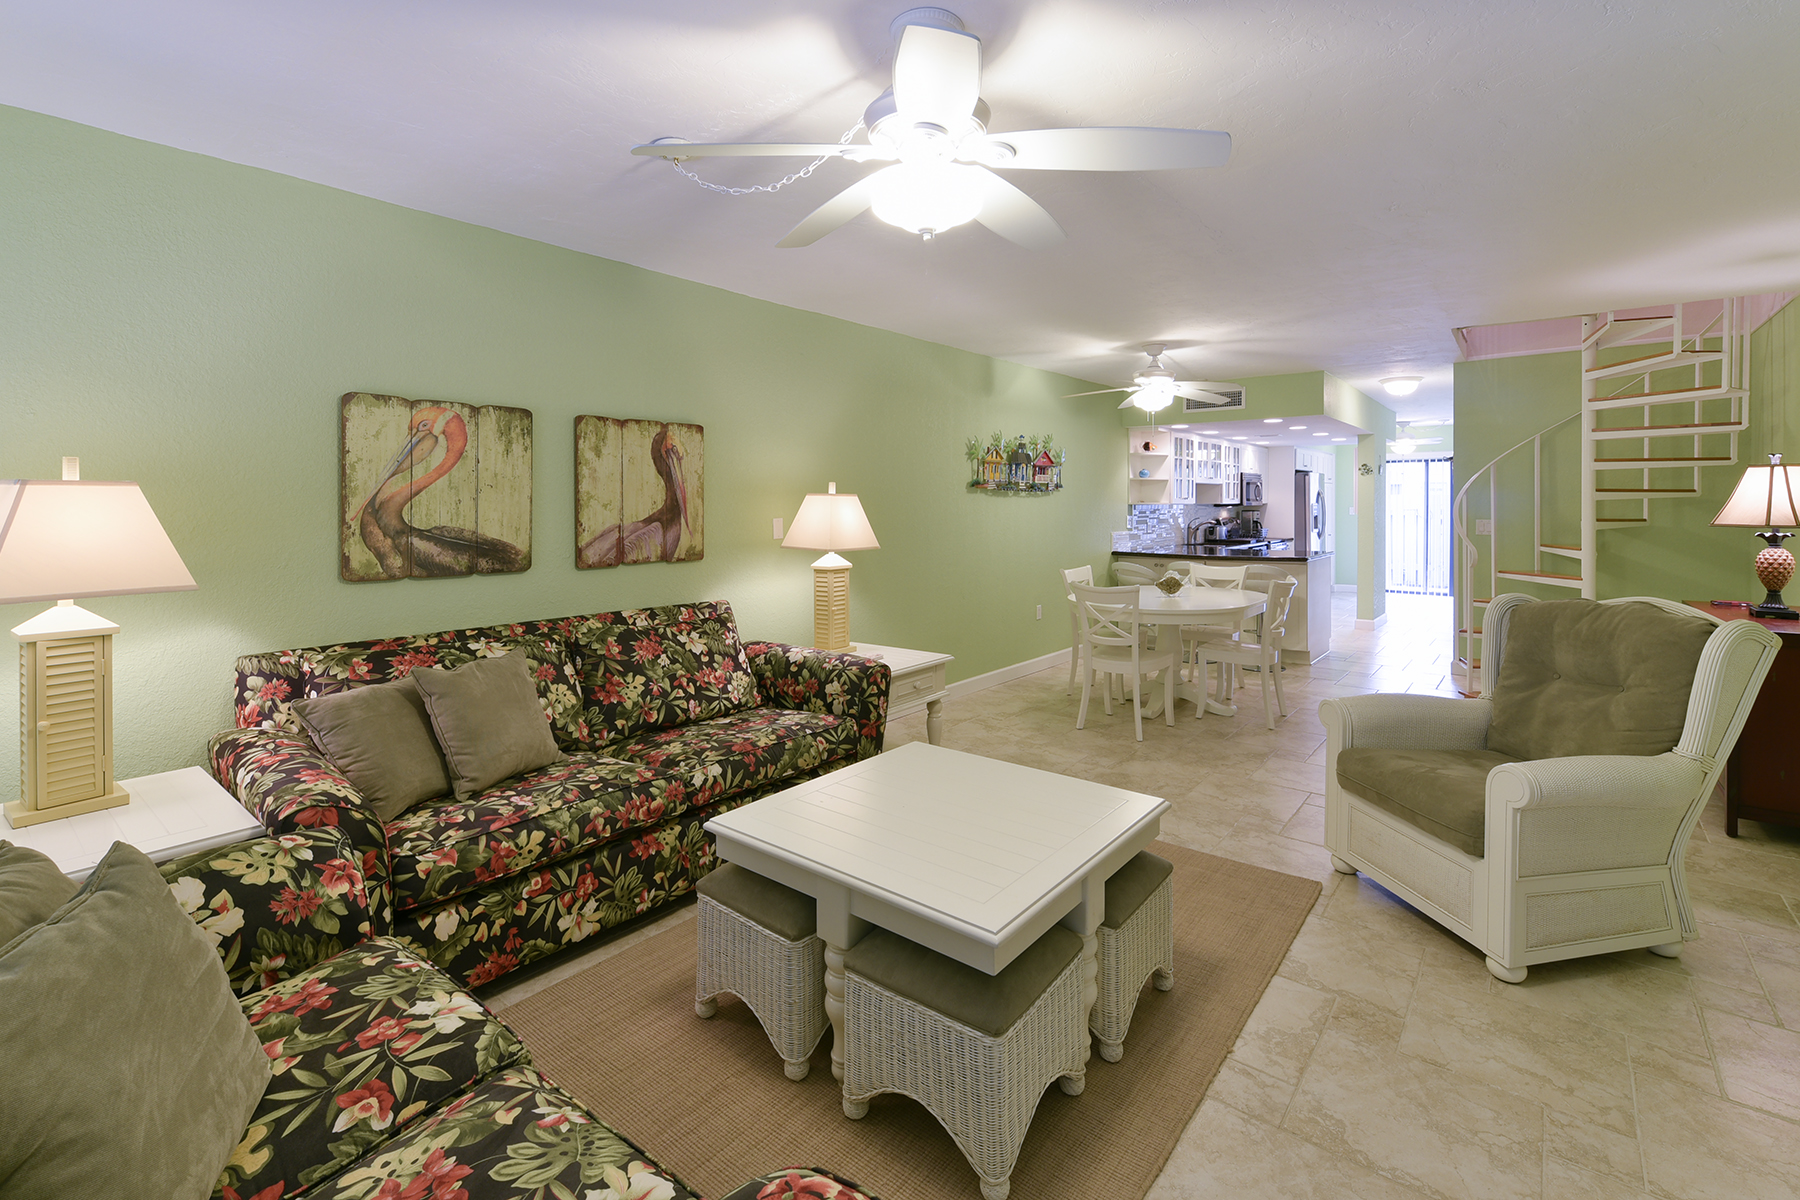 Townhouse for Sale at Bayfront Townhouse 87200 Overseas Highway F9 Florida Keys, Islamorada, Florida, 33036 United States